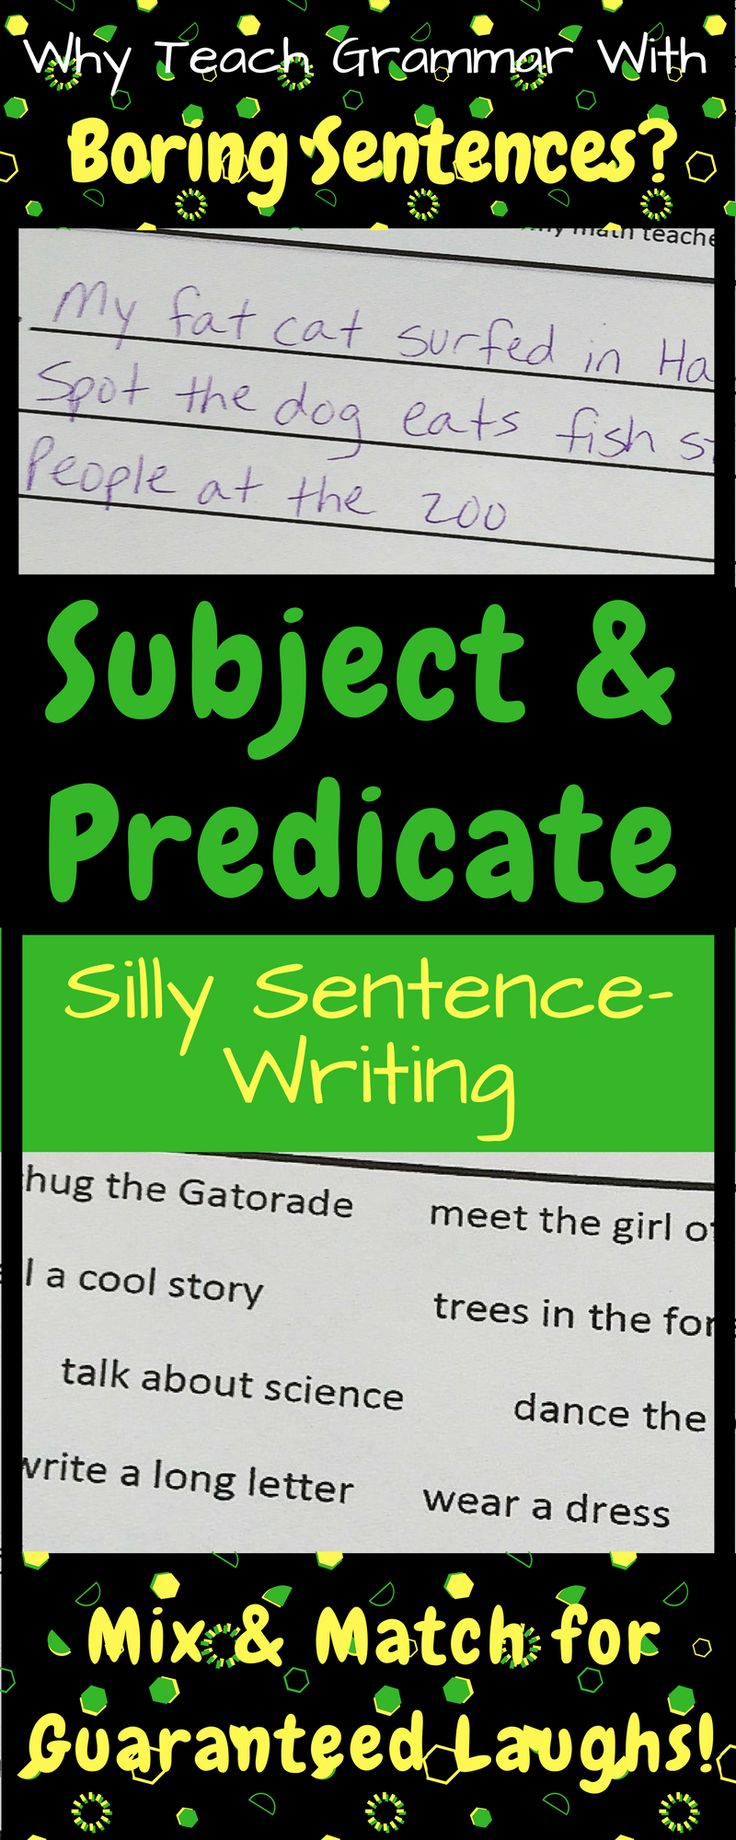 Teach subject and predicate with this fun sentence-writing activity! Grammar is hilarious when students write the examples! Plus, mixing and matching subjects and predicates reinforces students' understanding of complete sentences.